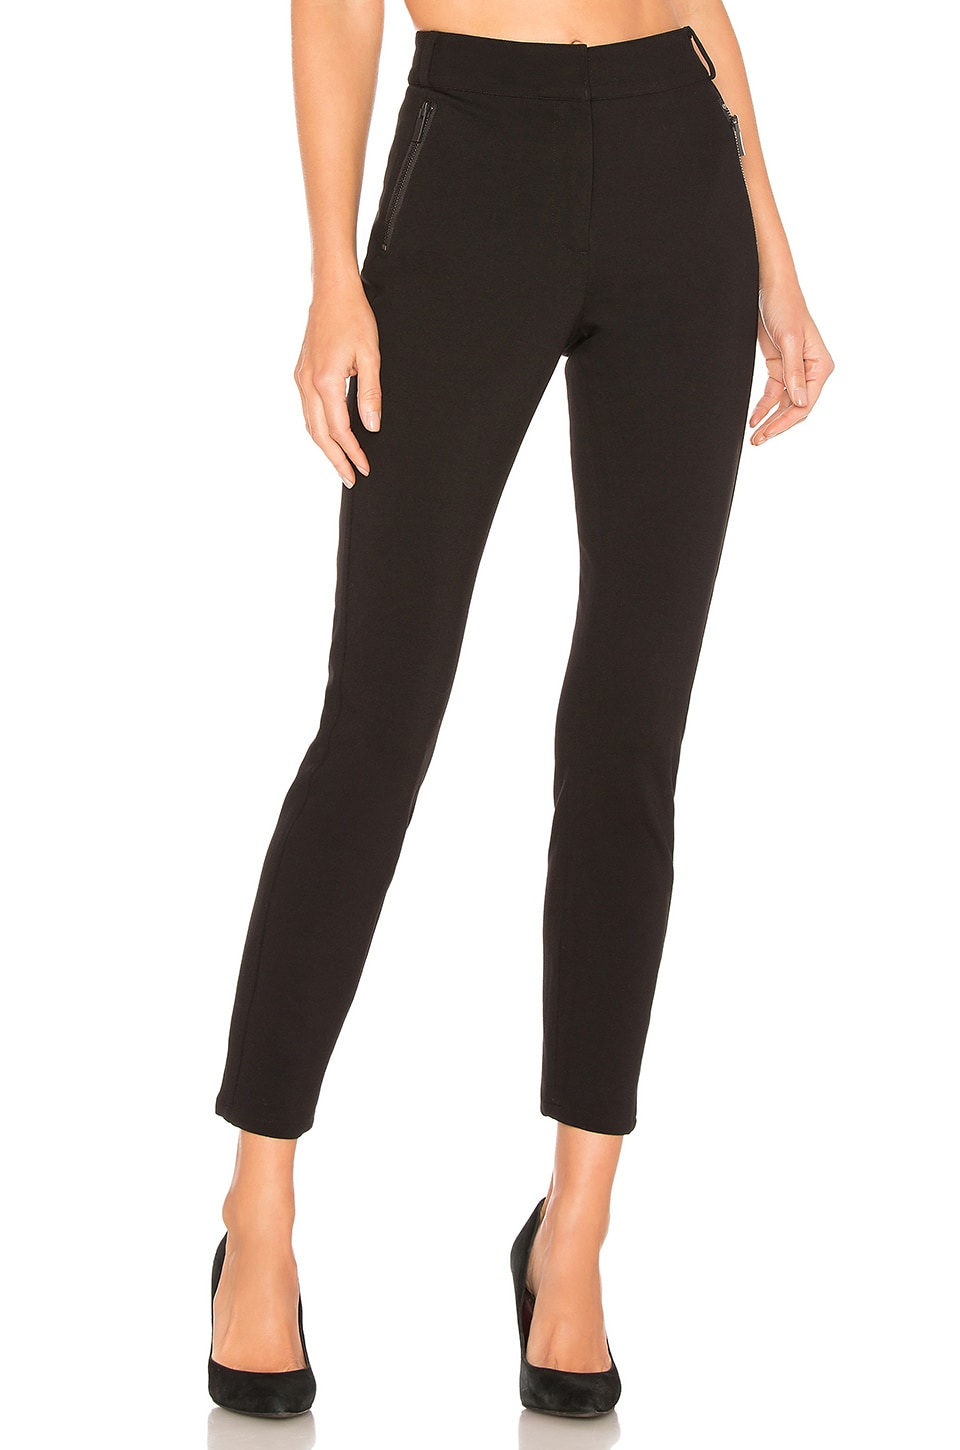 1. STATE Front Zip Pocket Pant in Rich Black